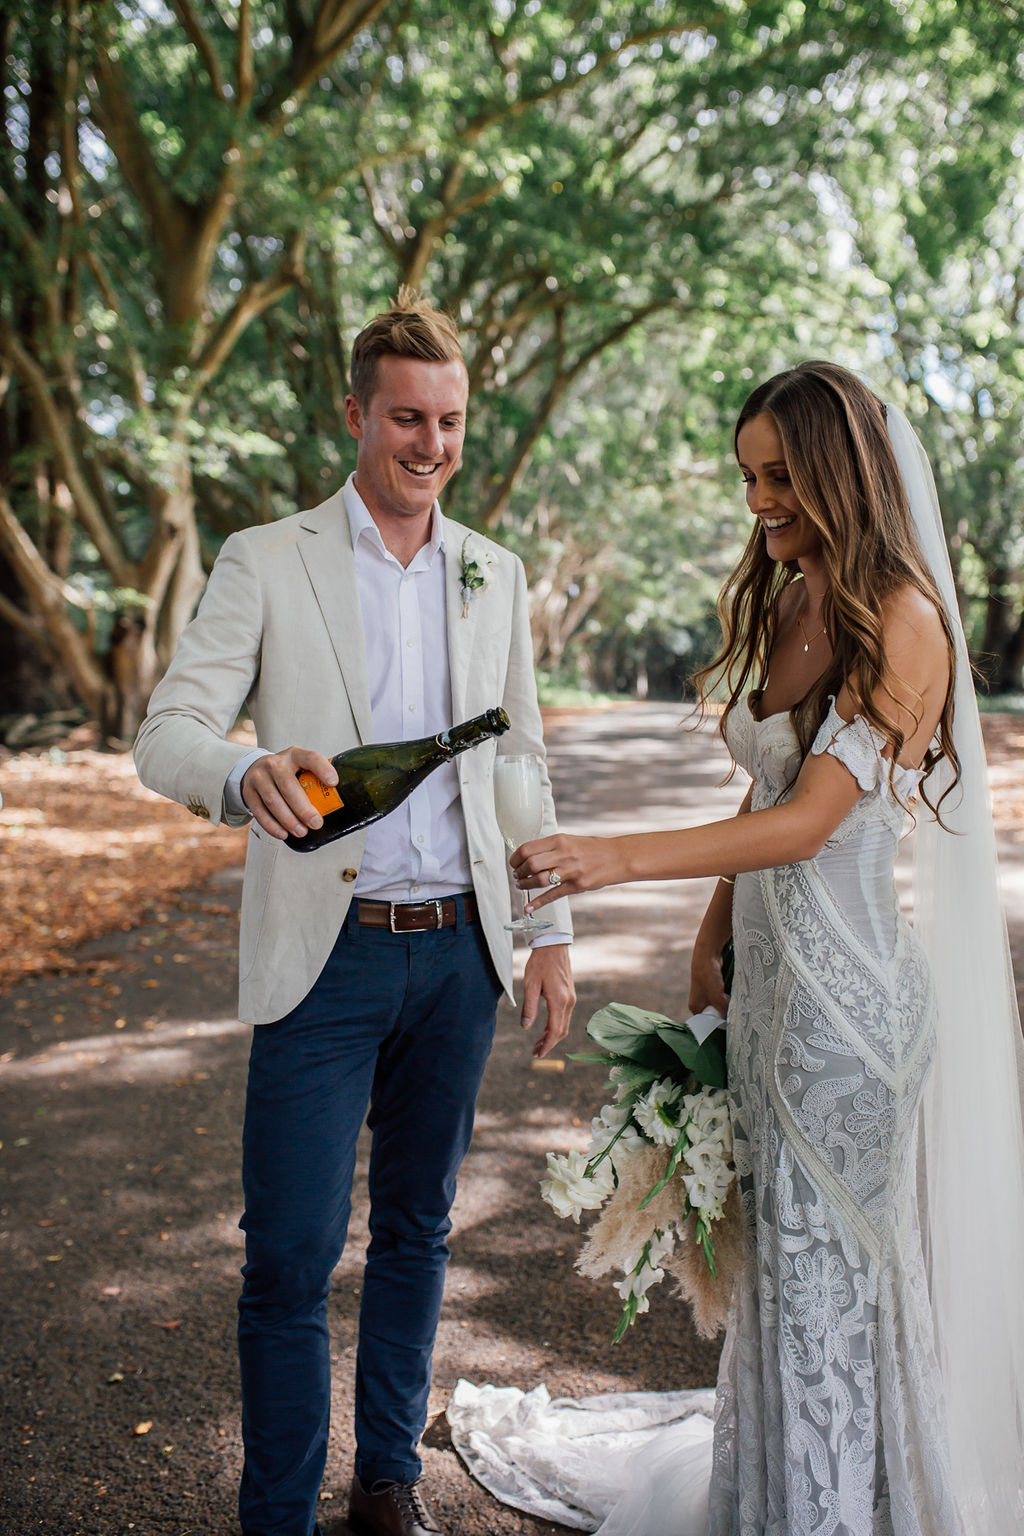 Tarsh & Steve - Champagne Time - Figtree Restaurant Wedding